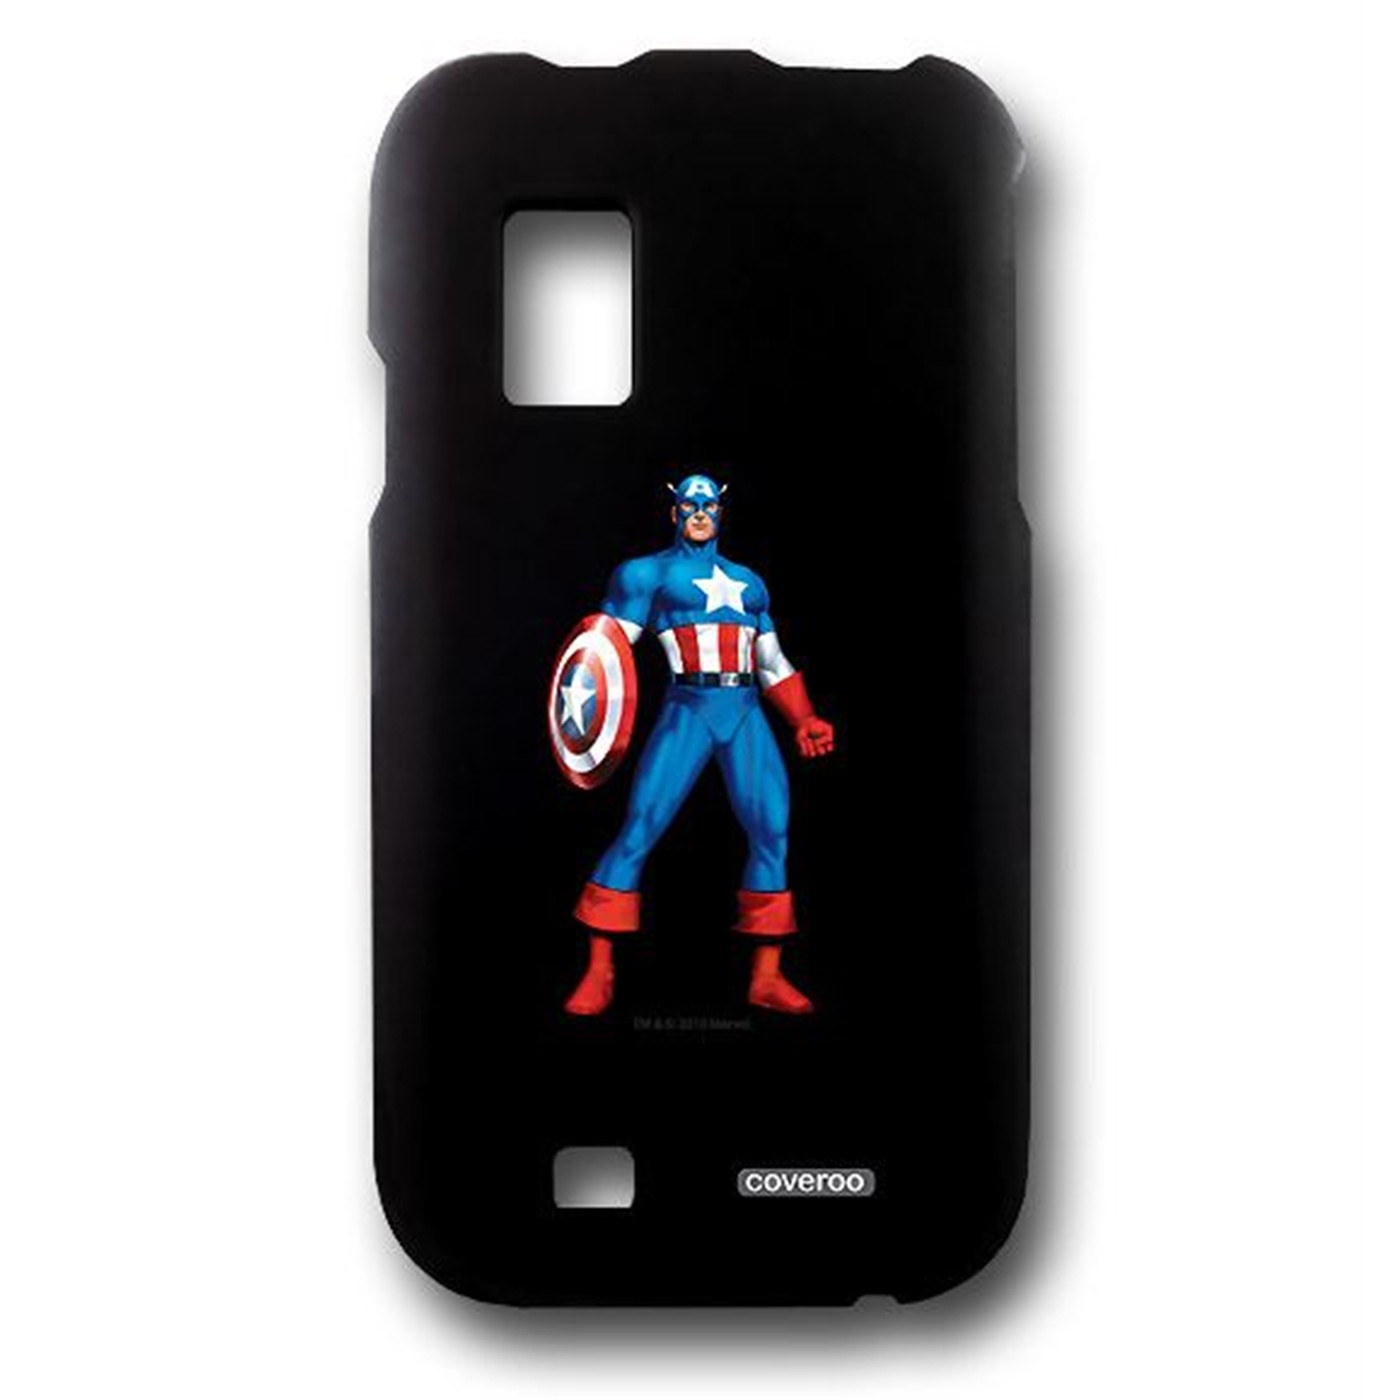 Captain America Stance Samsung Fascinate Case